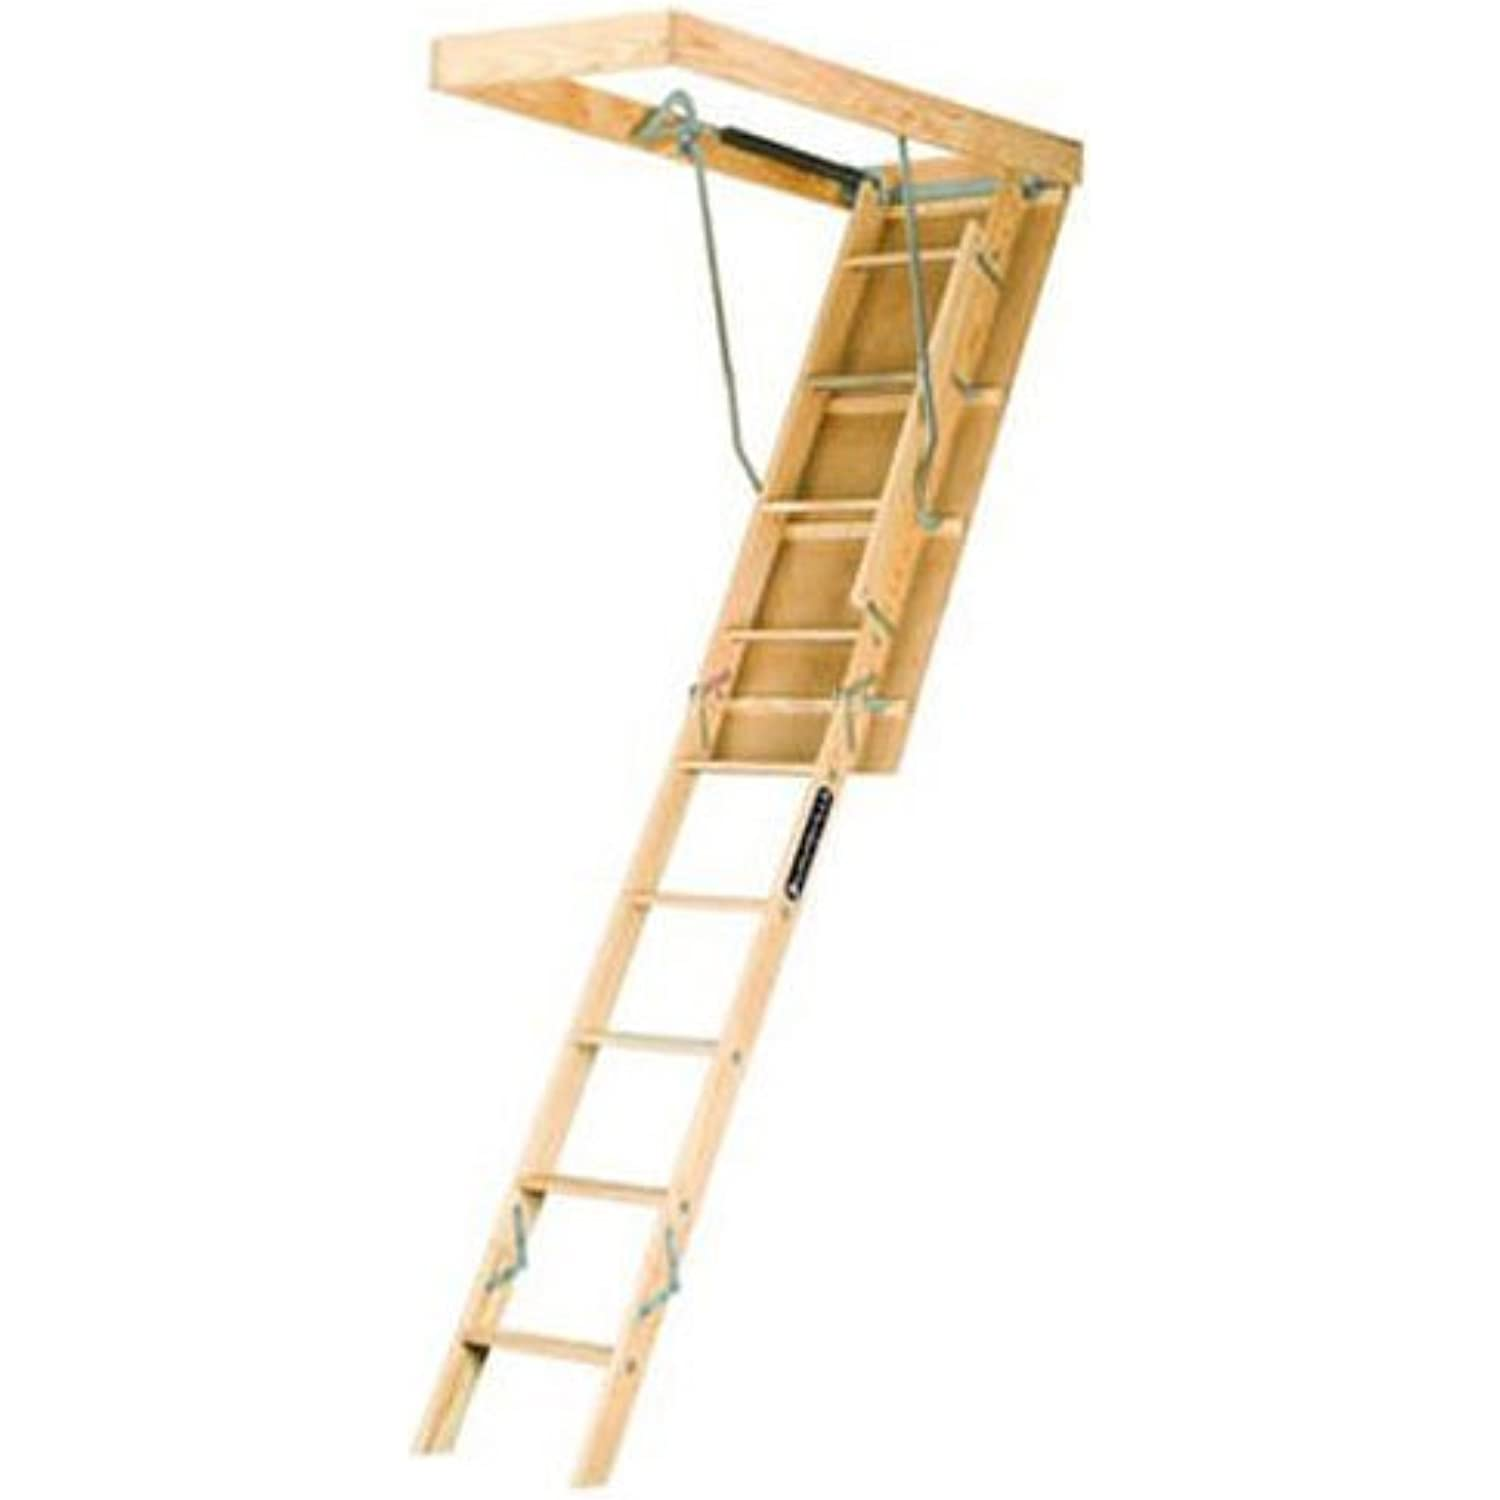 Louisville Ladder 22.5-by-54-Inch Wooden Attic Ladder, Fits 8-Foot 9-Inch to 10-Foot Ceiling Height, 250-Pound Capacity, L224P